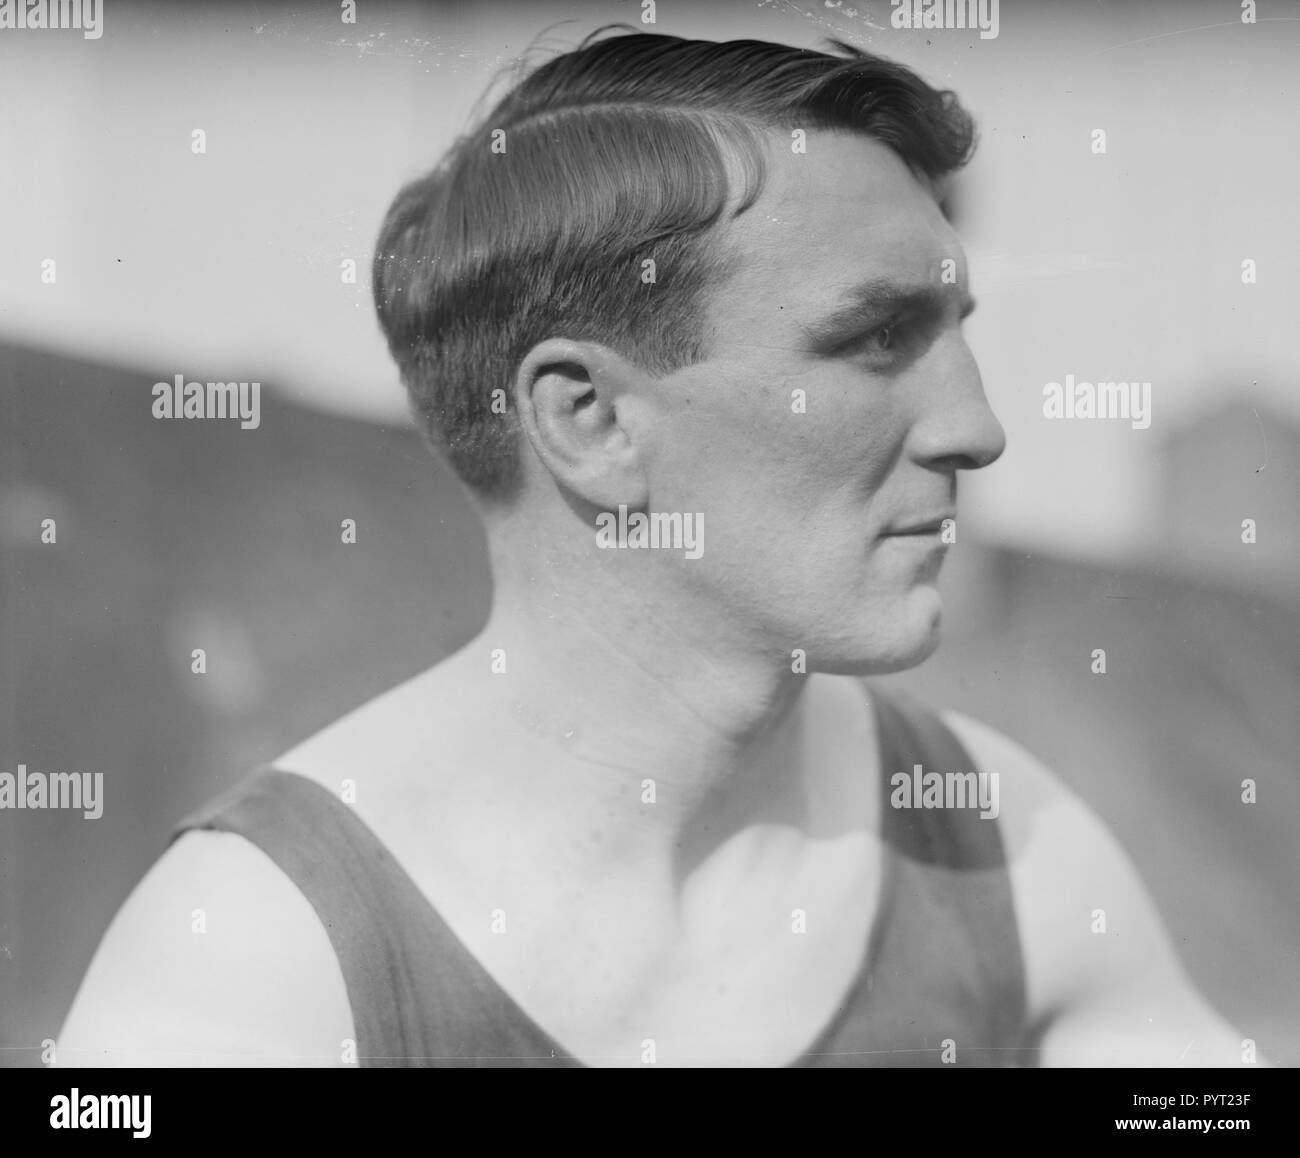 Freddie Welsh (1886-1927) Lightweight Champion of the World, known as the 'Welsh Wizard' born in Pontypridd, South Wales, United Kingdom Stock Photo